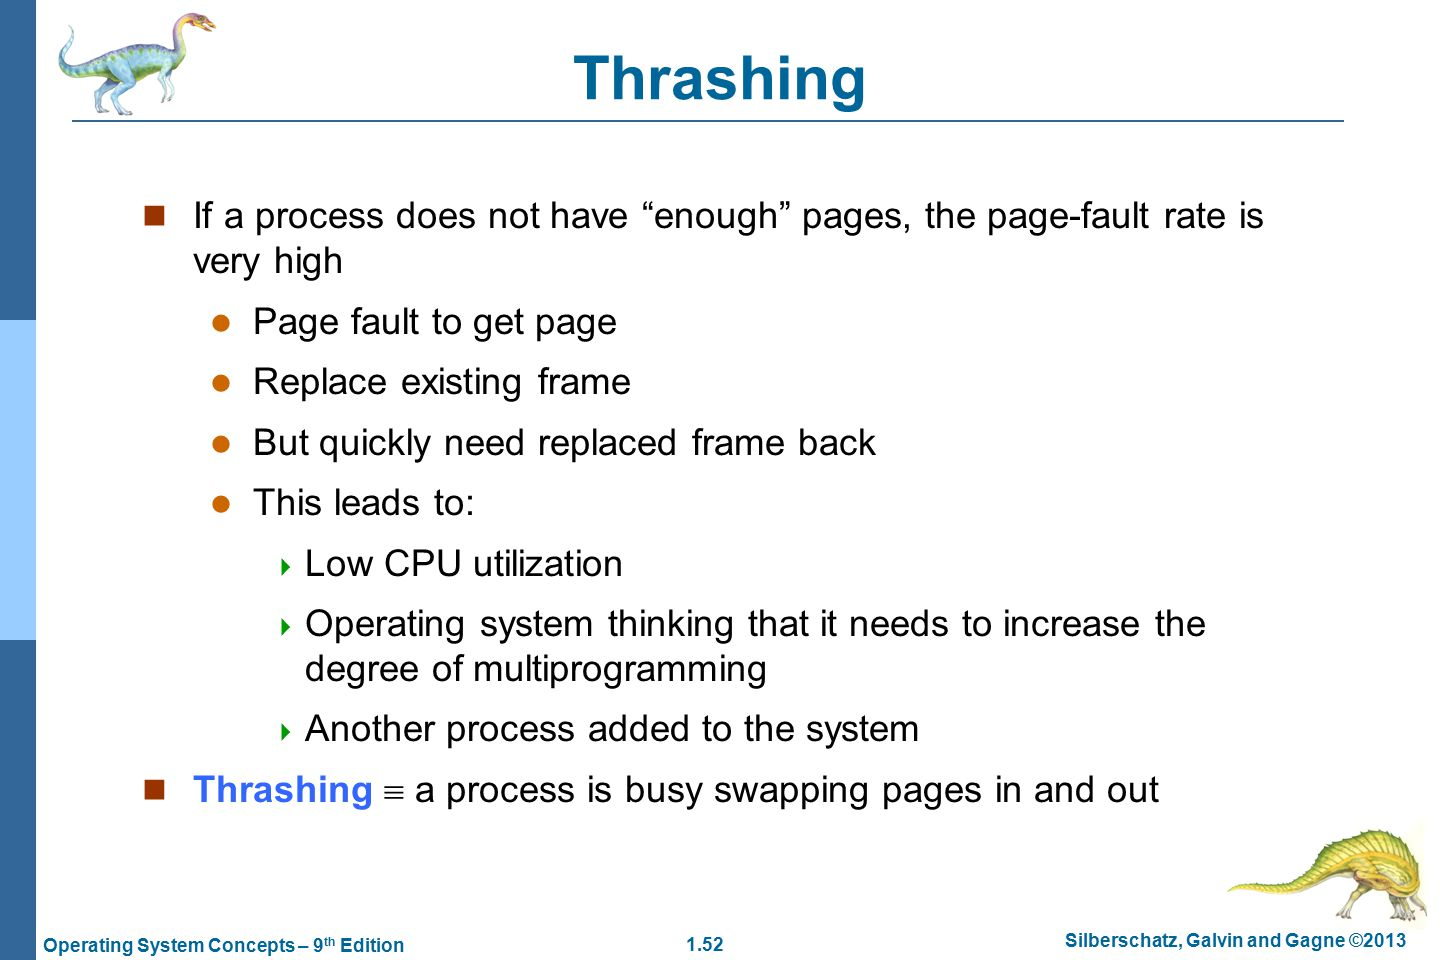 1.52 Silberschatz, Galvin and Gagne ©2013 Operating System Concepts – 9 th Edition Thrashing If a process does not have enough pages, the page-fault rate is very high Page fault to get page Replace existing frame But quickly need replaced frame back This leads to:  Low CPU utilization  Operating system thinking that it needs to increase the degree of multiprogramming  Another process added to the system Thrashing  a process is busy swapping pages in and out